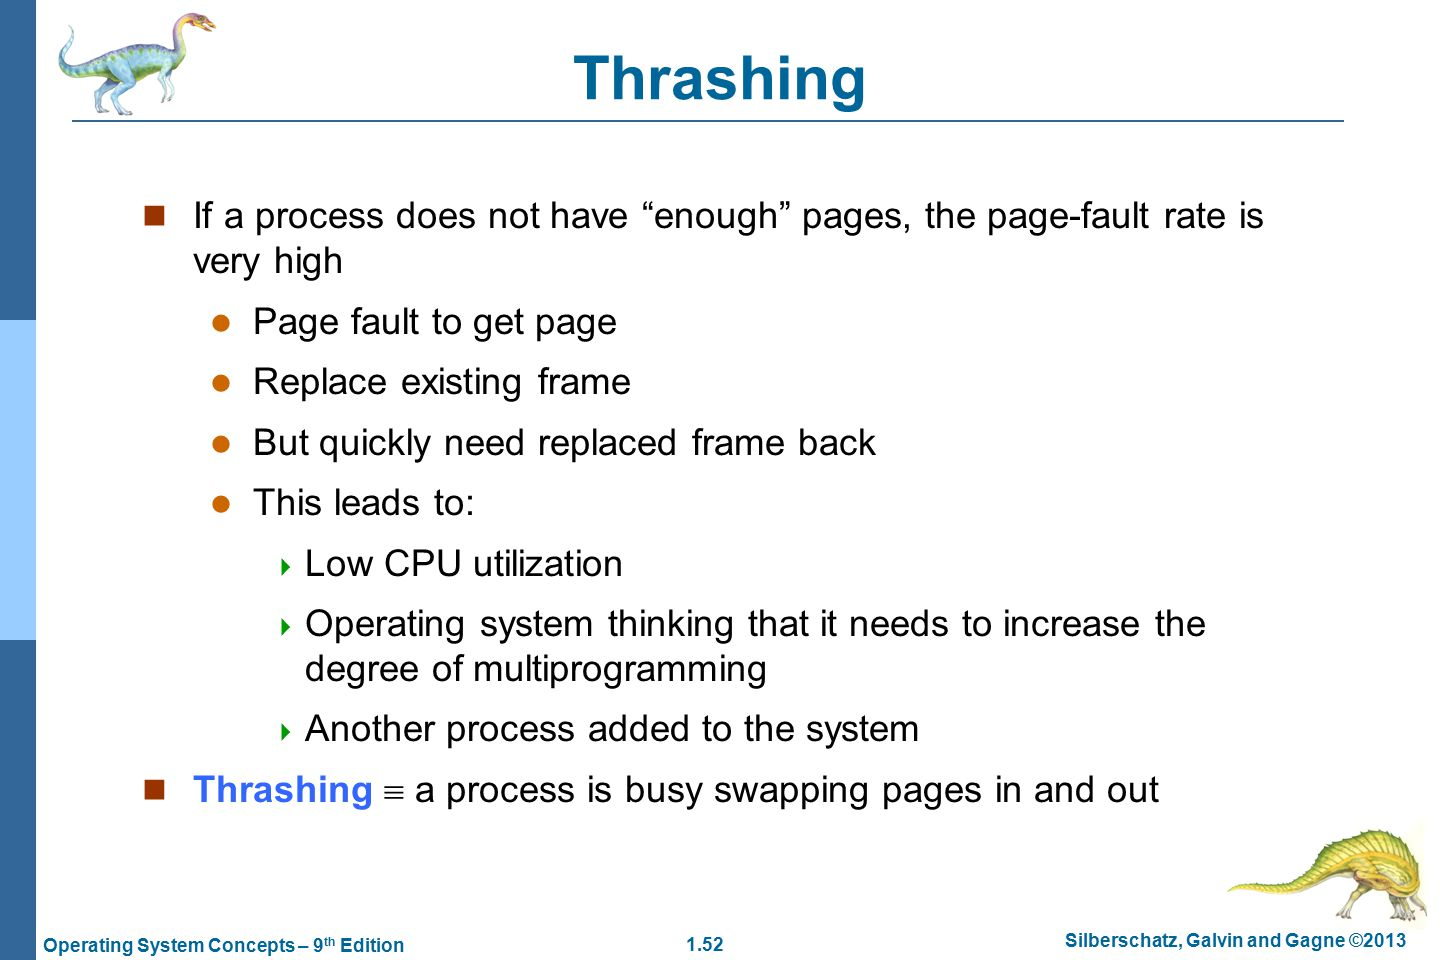 1.52 Silberschatz, Galvin and Gagne ©2013 Operating System Concepts – 9 th Edition Thrashing If a process does not have enough pages, the page-fault rate is very high Page fault to get page Replace existing frame But quickly need replaced frame back This leads to:  Low CPU utilization  Operating system thinking that it needs to increase the degree of multiprogramming  Another process added to the system Thrashing  a process is busy swapping pages in and out